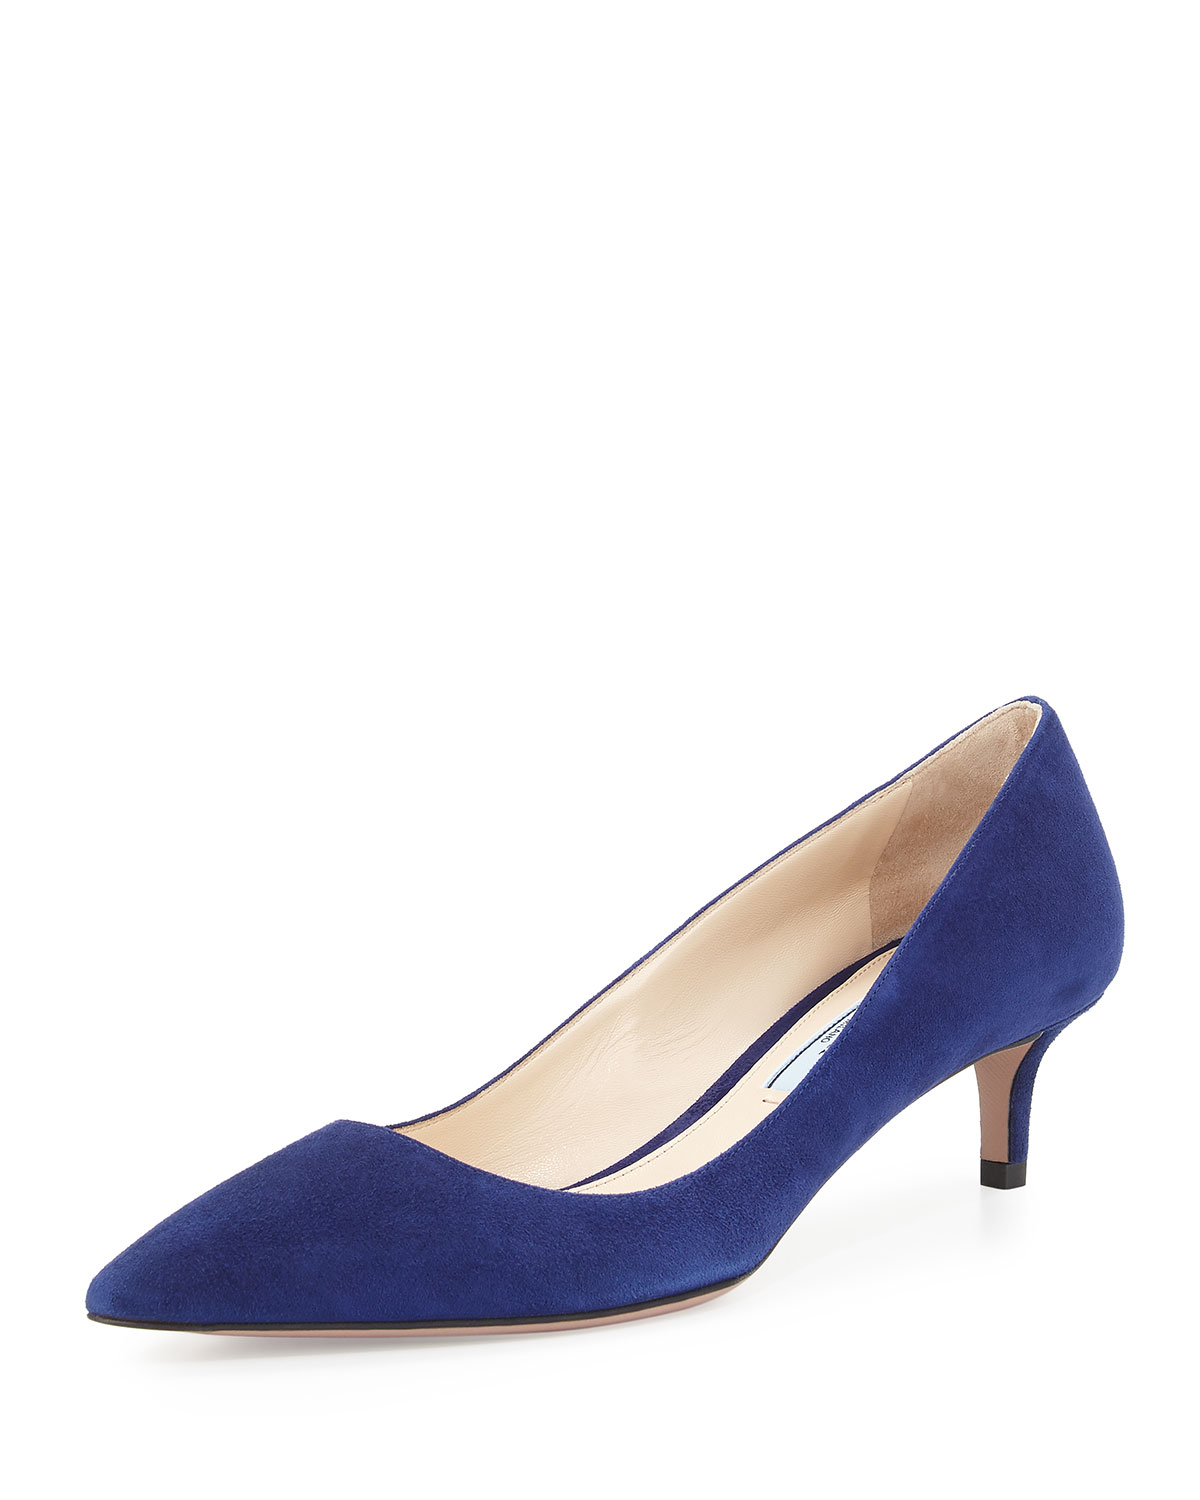 c561117c1e12 Prada Suede 45mm Pointed-Toe Pumps